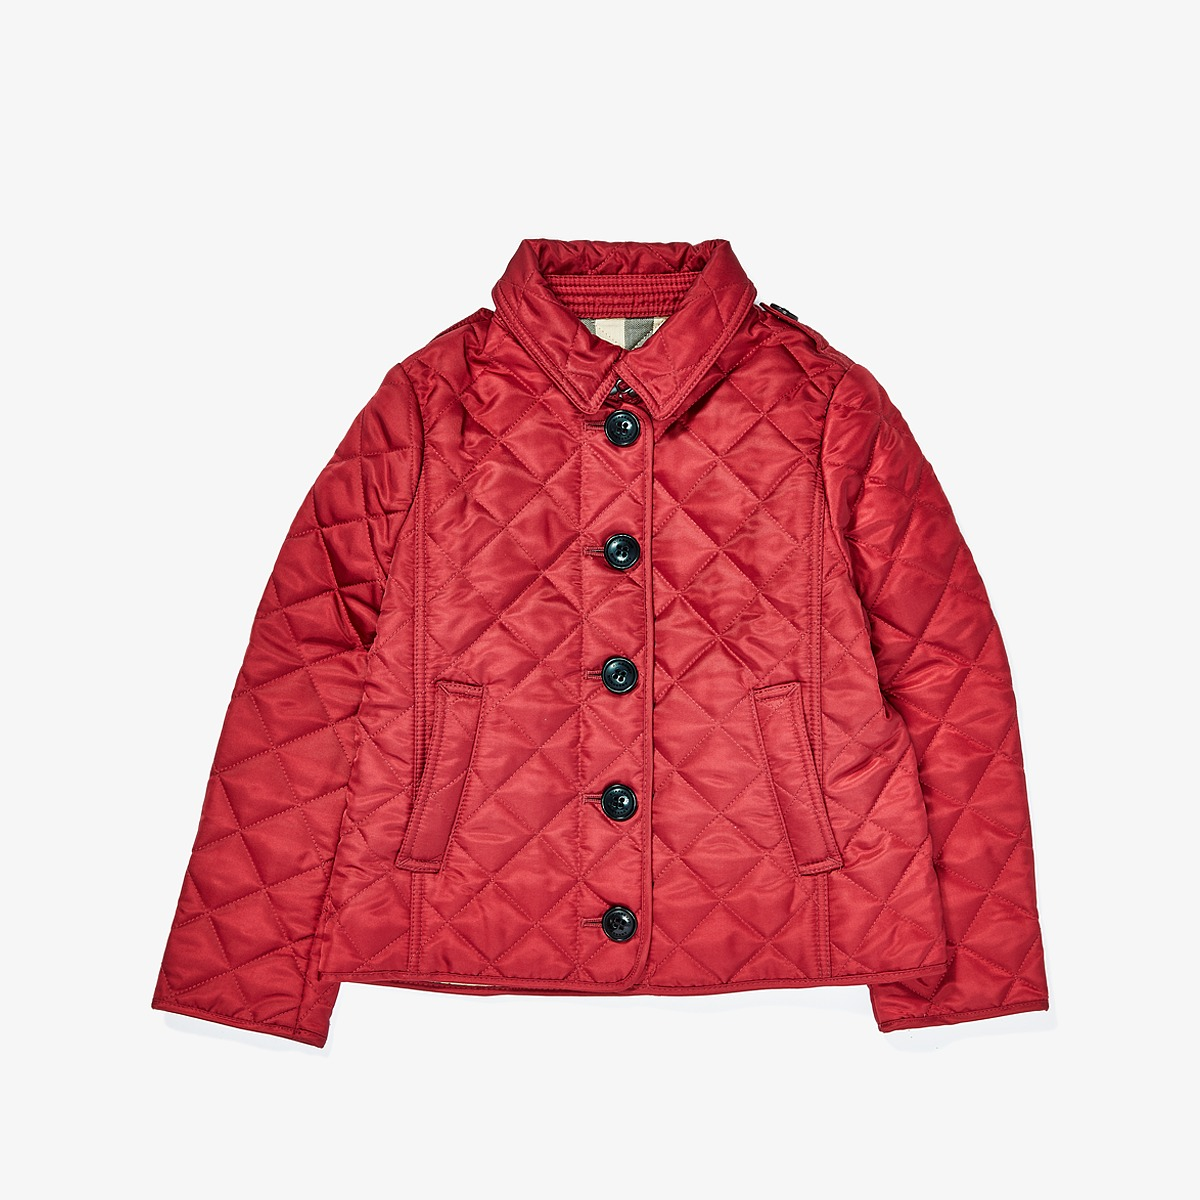 Burberry Kids Burberry Kids - Ashurst Quilted Jacket